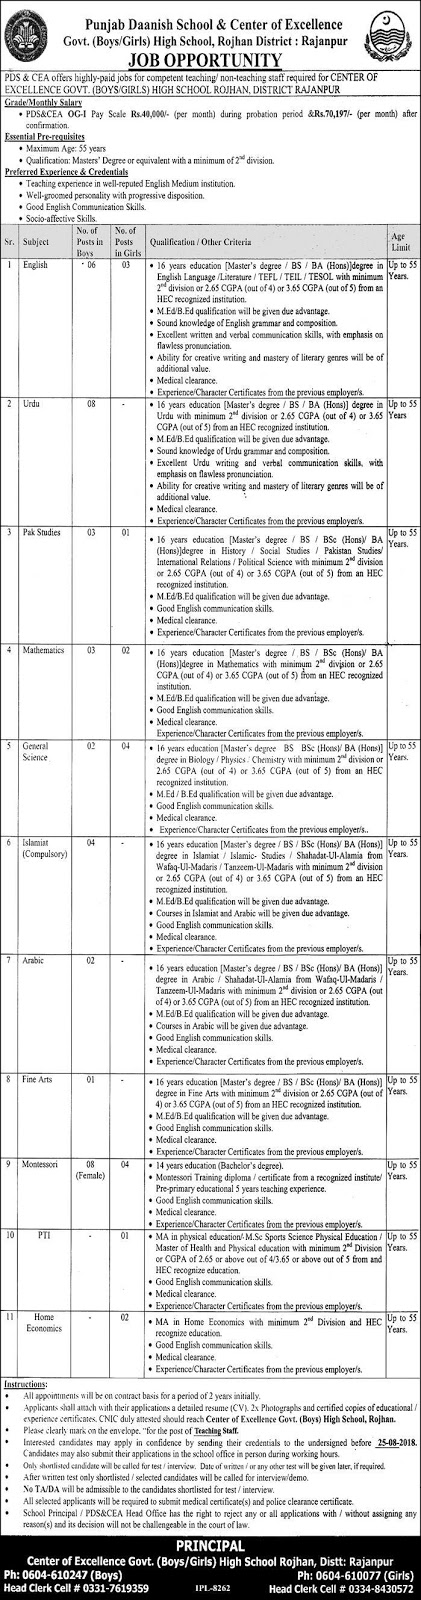 Punjab Daanish Schools And Center Of Excellence Authority Jobs August 2018